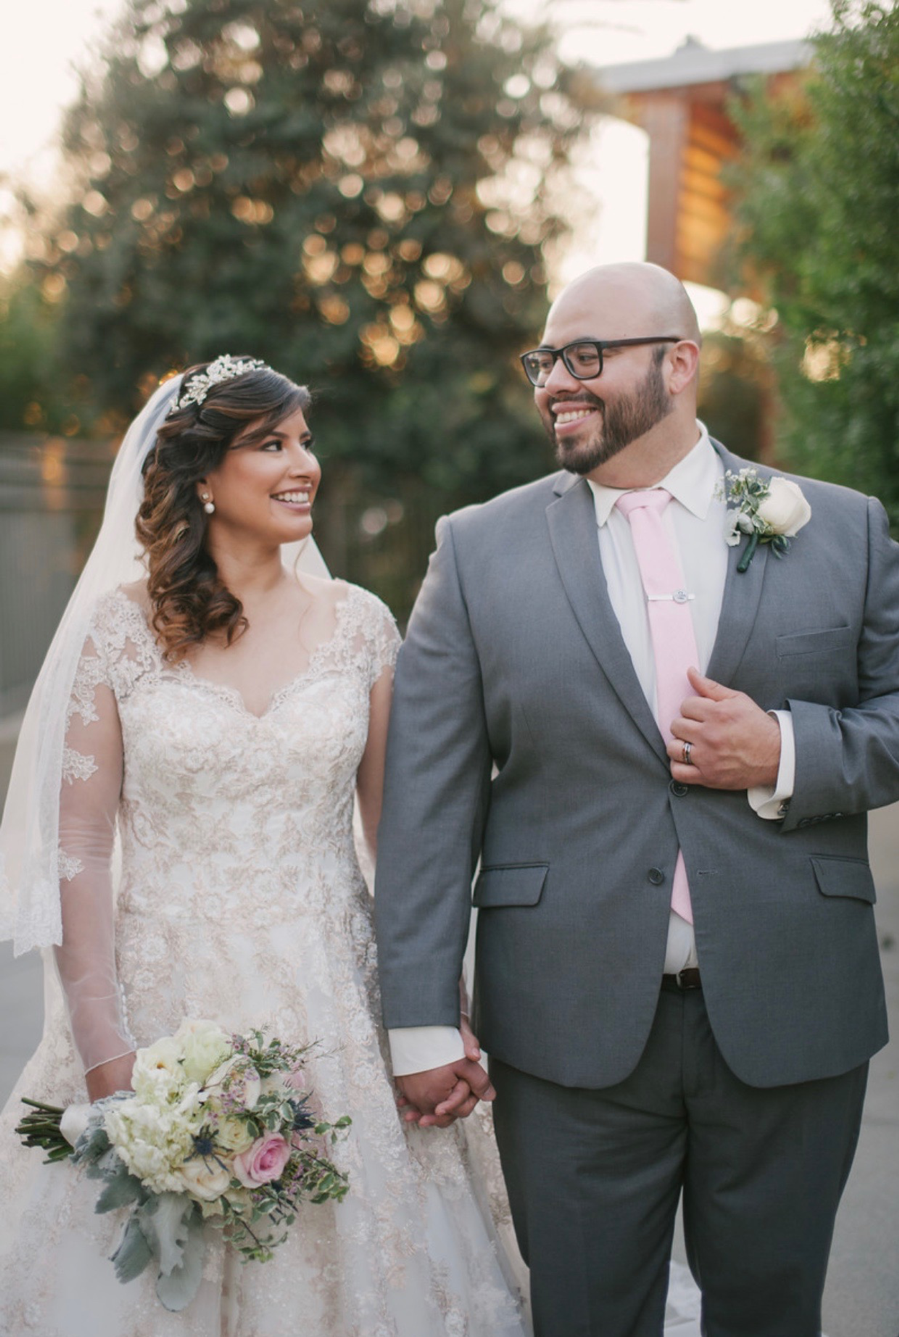 Elizabeth and Ronnie's wedding was a huge success. Photo credit: DnA Wylie Photography